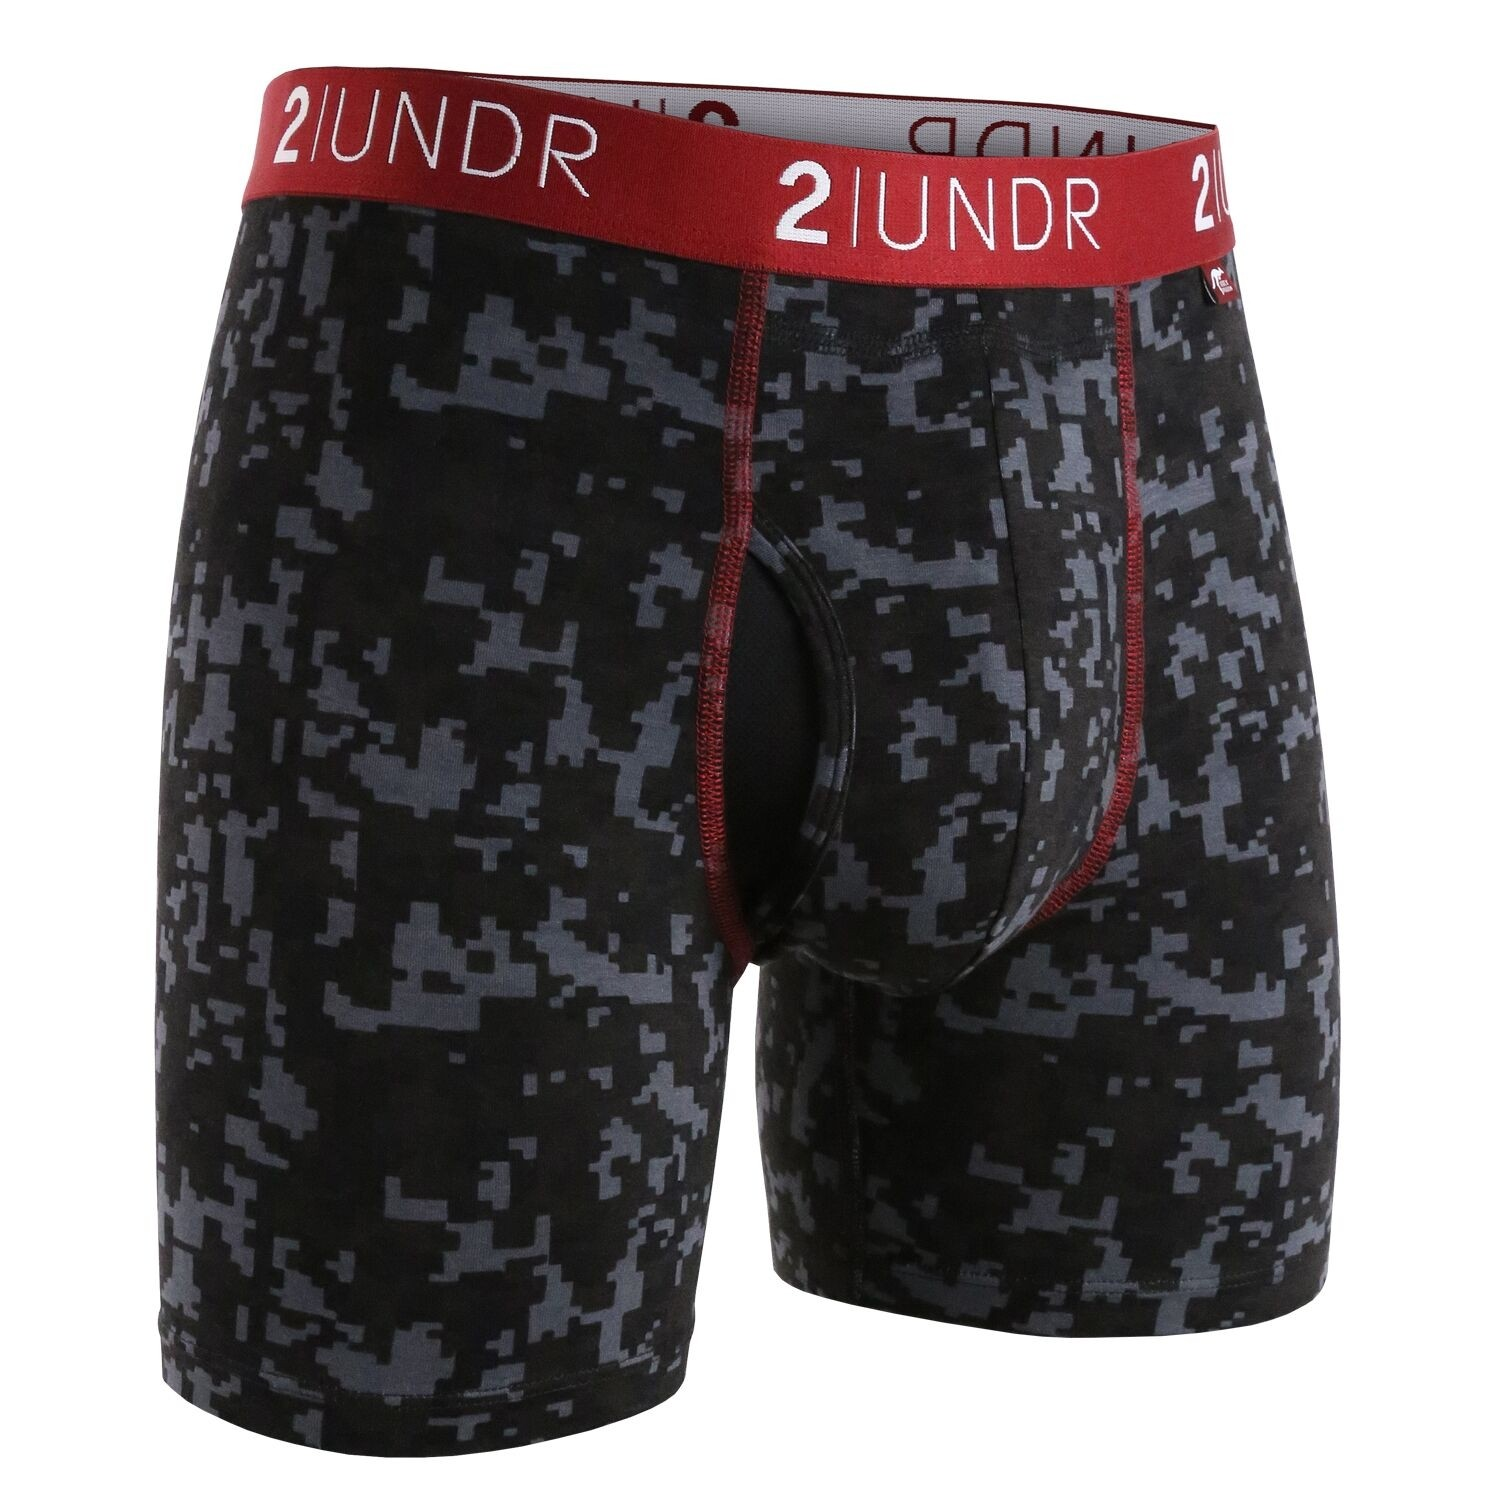 Features: Ultra-Soft Signature Modal fabric Shrink resistant material Remains soft even after repeated washing 95% Lenzing Modal Beechwood Fiber/5% Elastane